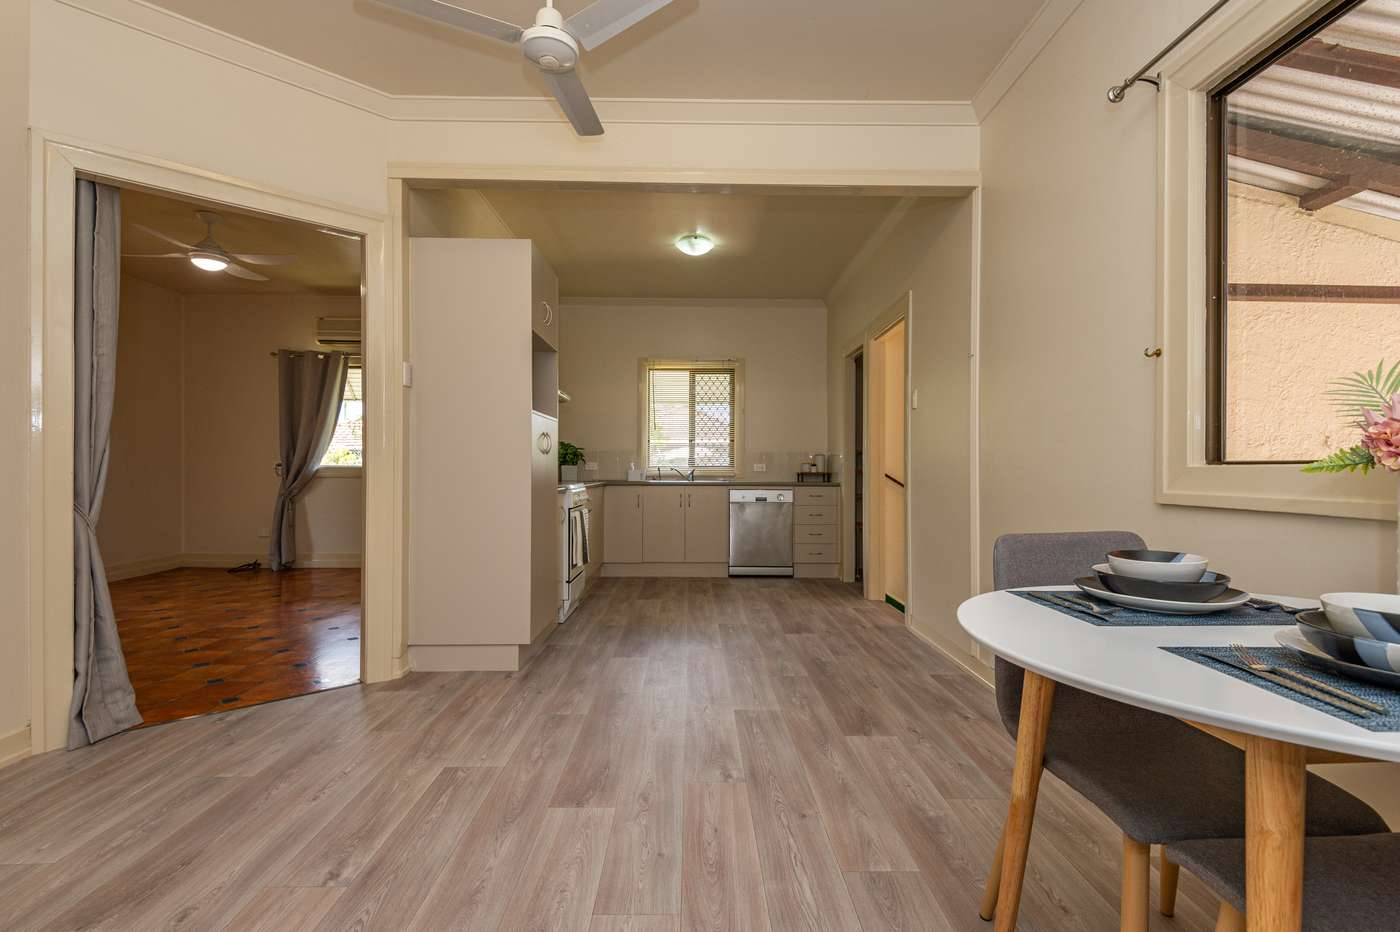 Main view of Homely house listing, 35 Hurst Street, Walkervale, QLD 4670